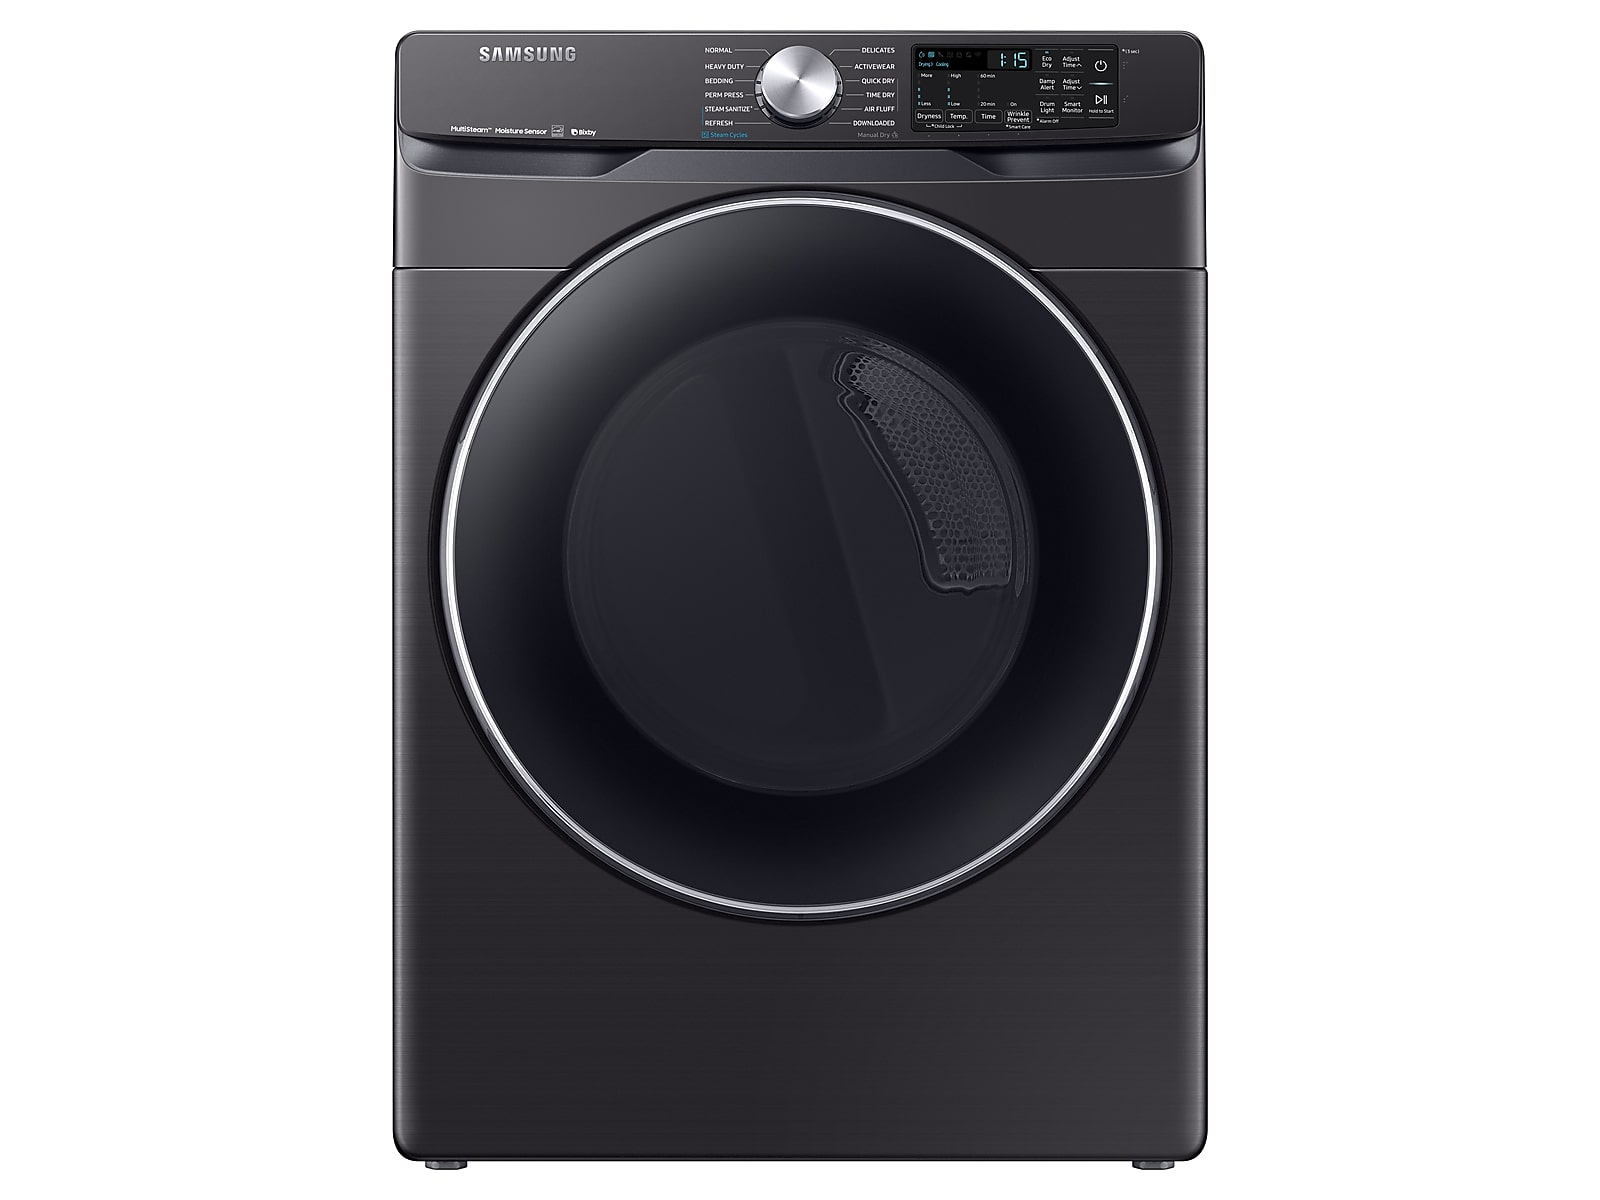 Samsung coupon: Samsung 7.5 cu. ft. Smart Gas Dryer with Steam Sanitize+ in Black Stainless Steel(DVG45R6300V/A3)